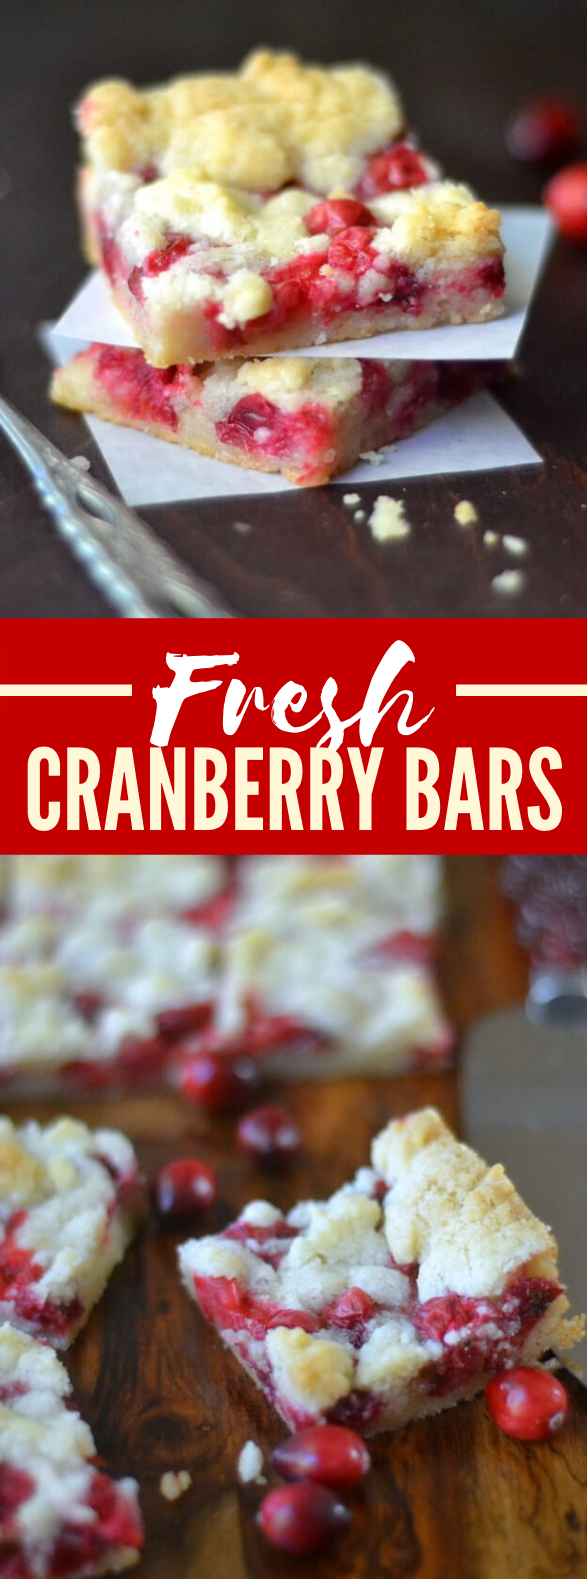 FRESH CRANBERRY BARS #desserts #freshtart